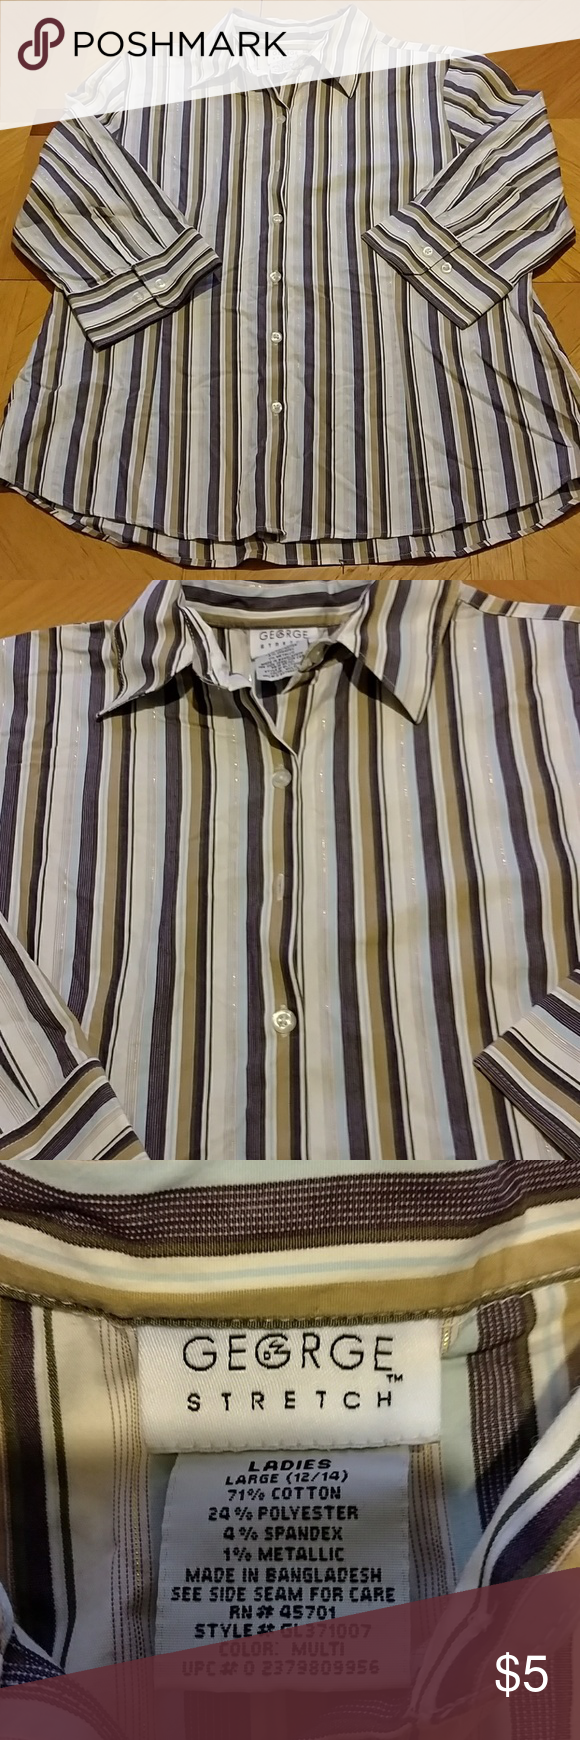 Ladie 3/4 sleeves shirt Ladies George 3/4 sleeve shirt. Size 12/14. Smoke free home. Very pretty colors gold sparkly stripes throughout make it stand out. Excellent condition. George Tops Button Down Shirts